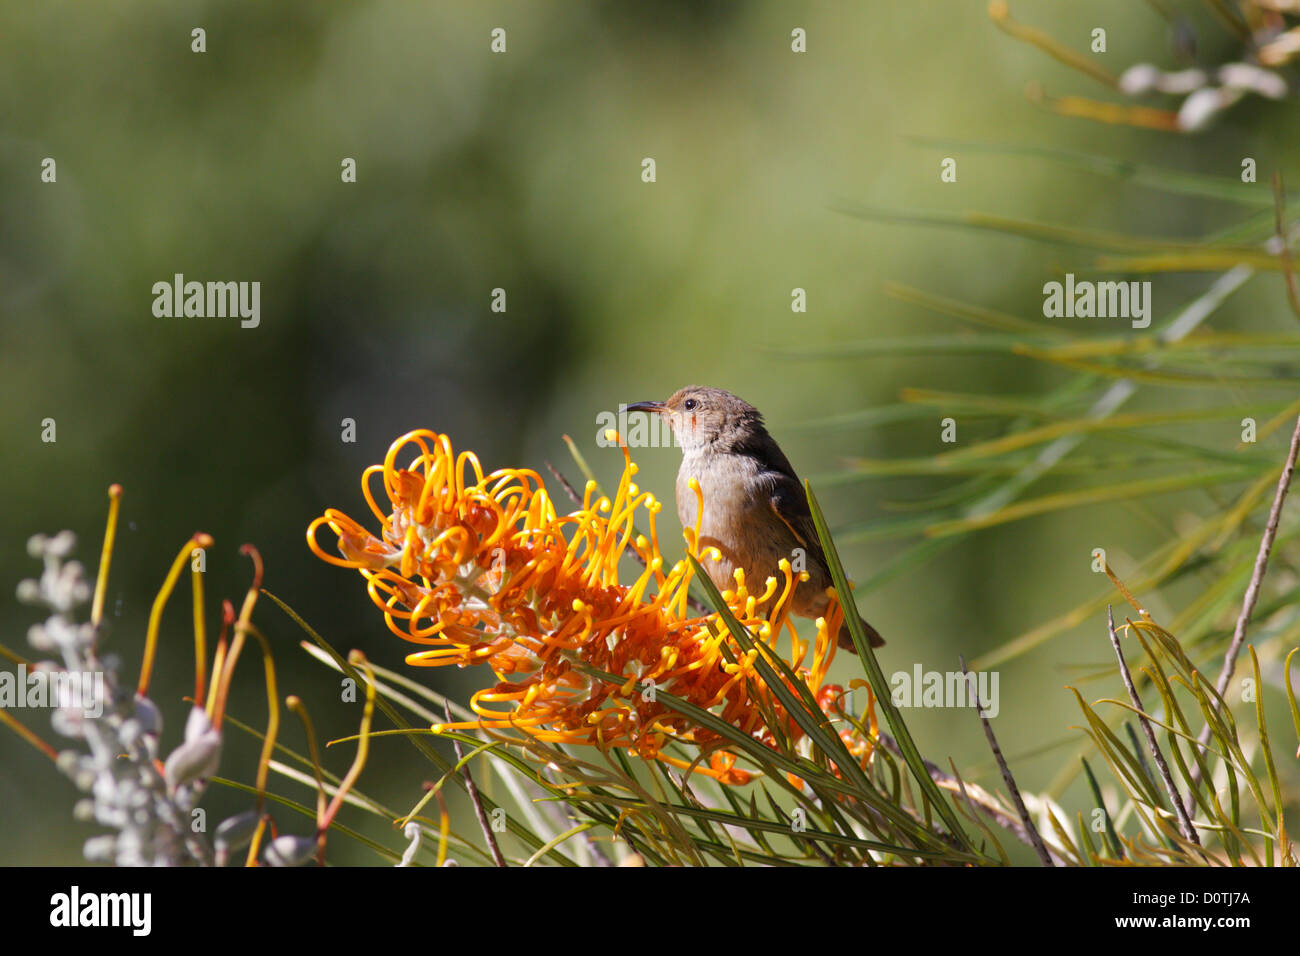 Female Scarlet Honeyeater (Myzomela sanguinolenta) on a Grevillea plant, Newrybar, New South Wales, Australia - Stock Image